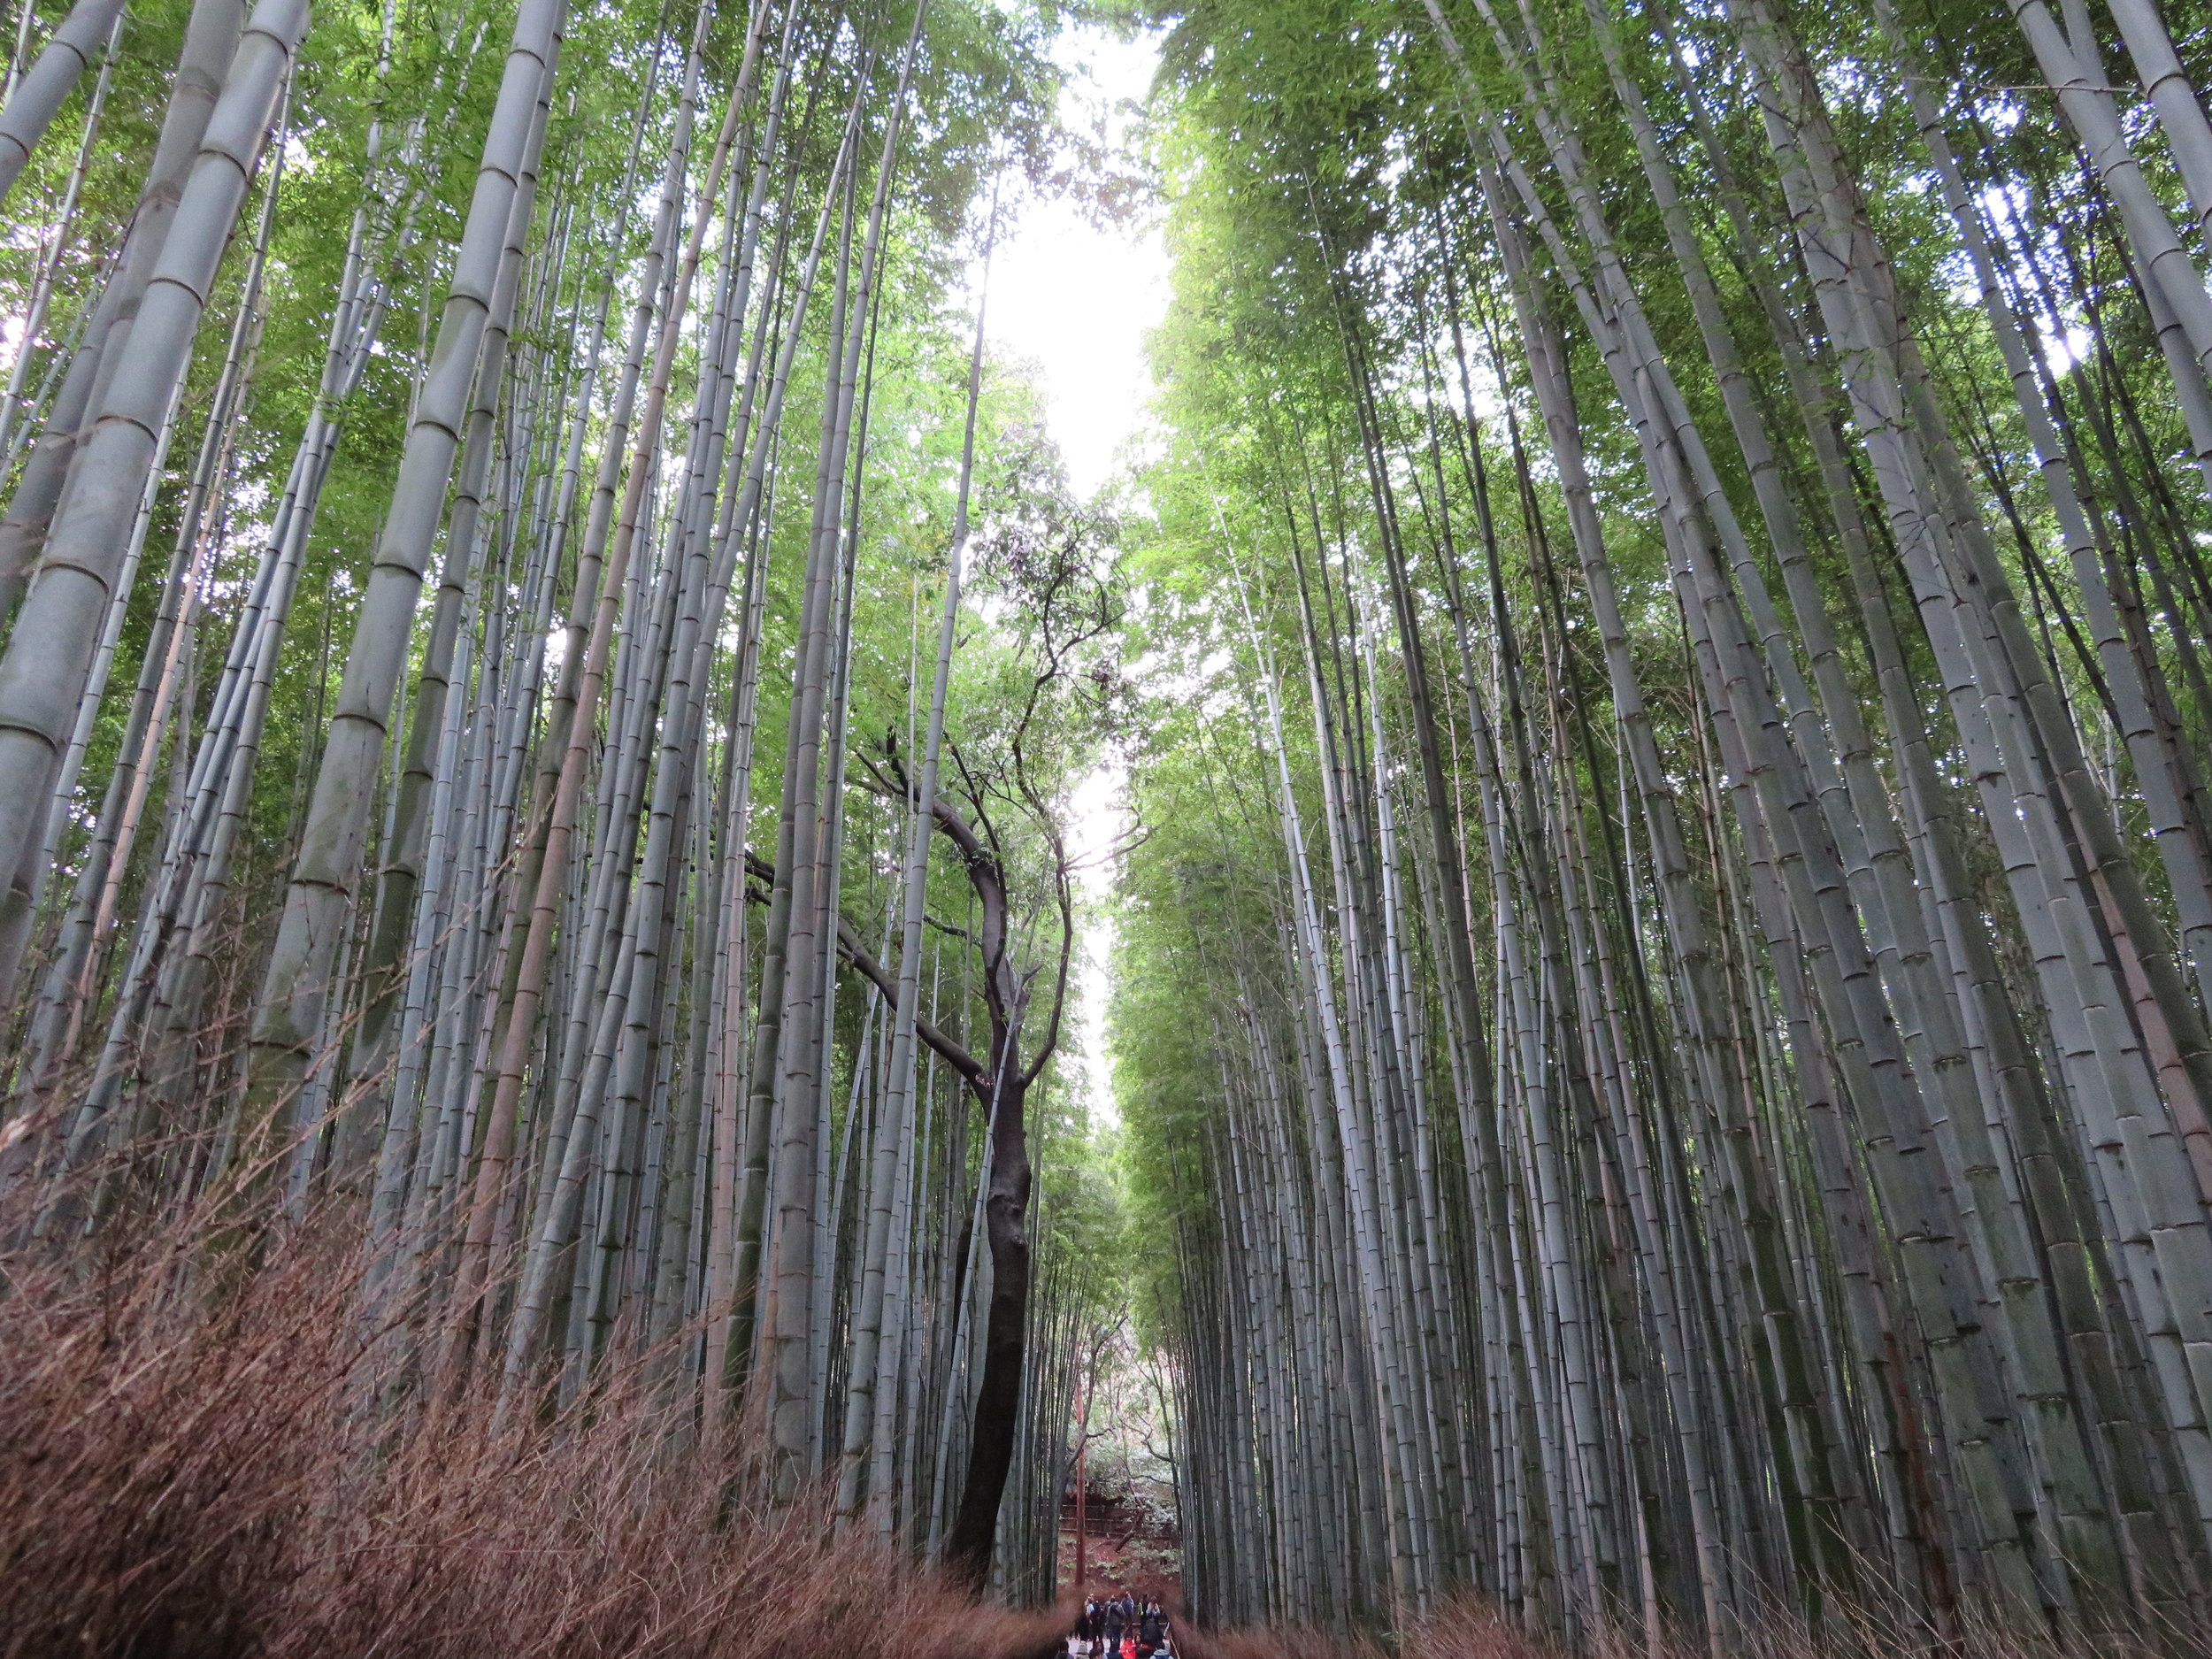 The Arashiyama Bamboo Grove near Kyoto.